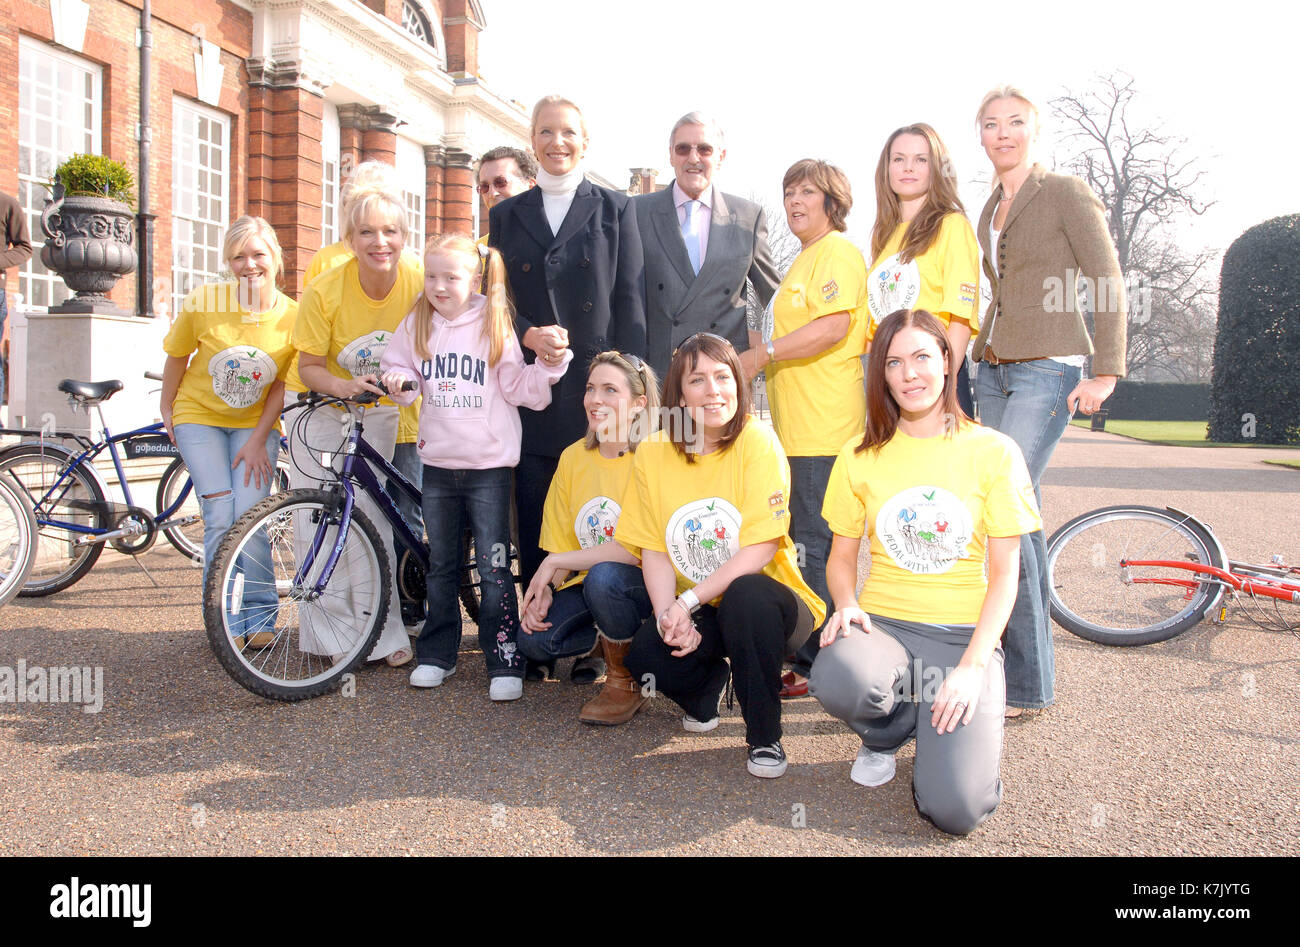 Photo must be credited ©Kate Green/Alpha 065341 27/03/2007 Suzanne Shaw, Denise Welch, Robert Powell, Princess Michael of Kent, Jimmy Hill, Lynda Bellingham, Amanda Holden, Tamara Beckwith, Lisa Rogers, Fay Ripley and Linzi Stoppard Pedal With The Parcs Photocall in aid of Sparks and The National Byway at The Orangery, Kensington Palace in London - Stock Image